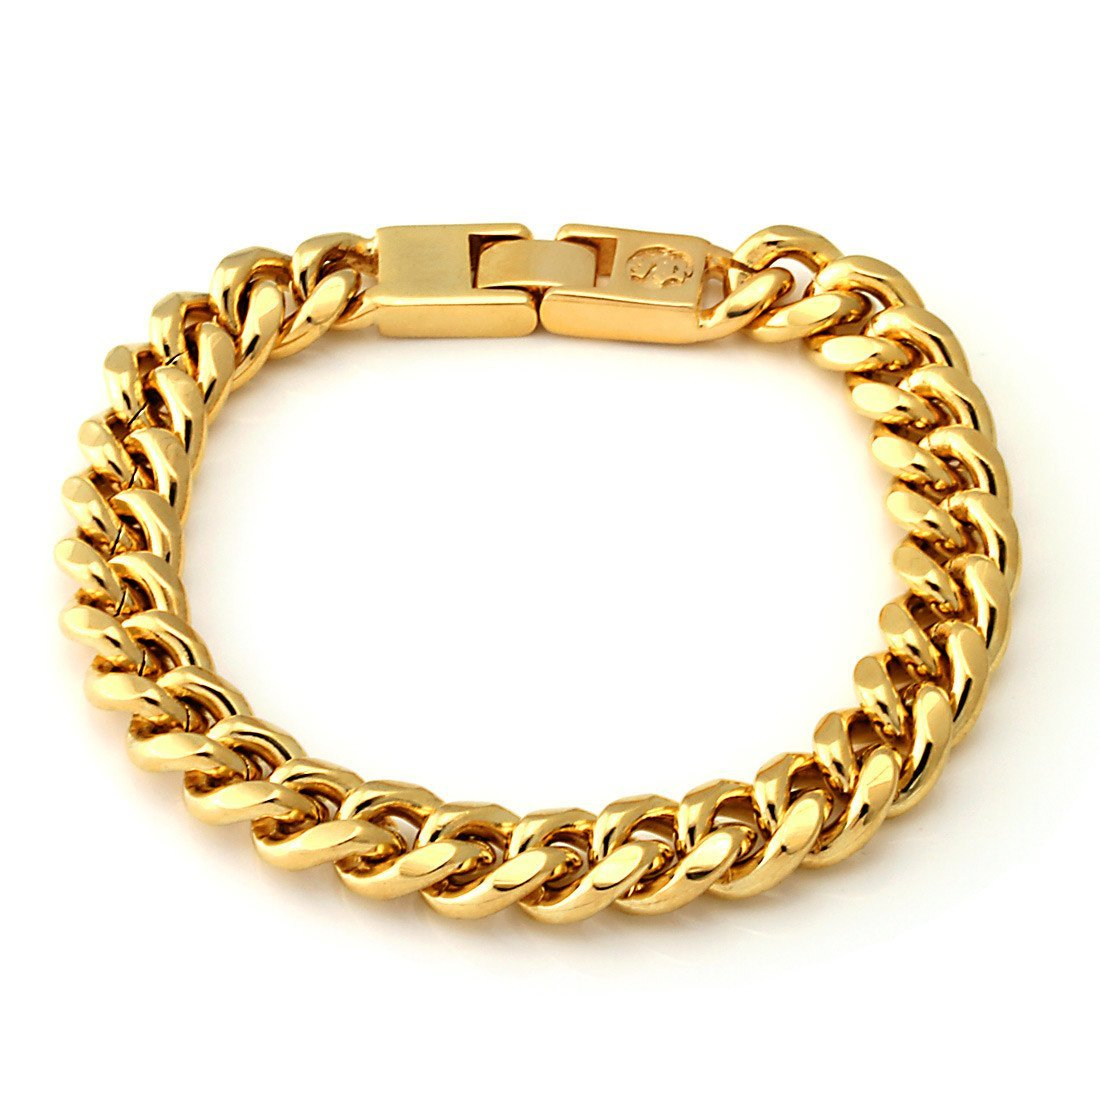 Bracelets - 10mm King Ice 14K Gold Miami Cuban Chain Bracelet -   jetcube